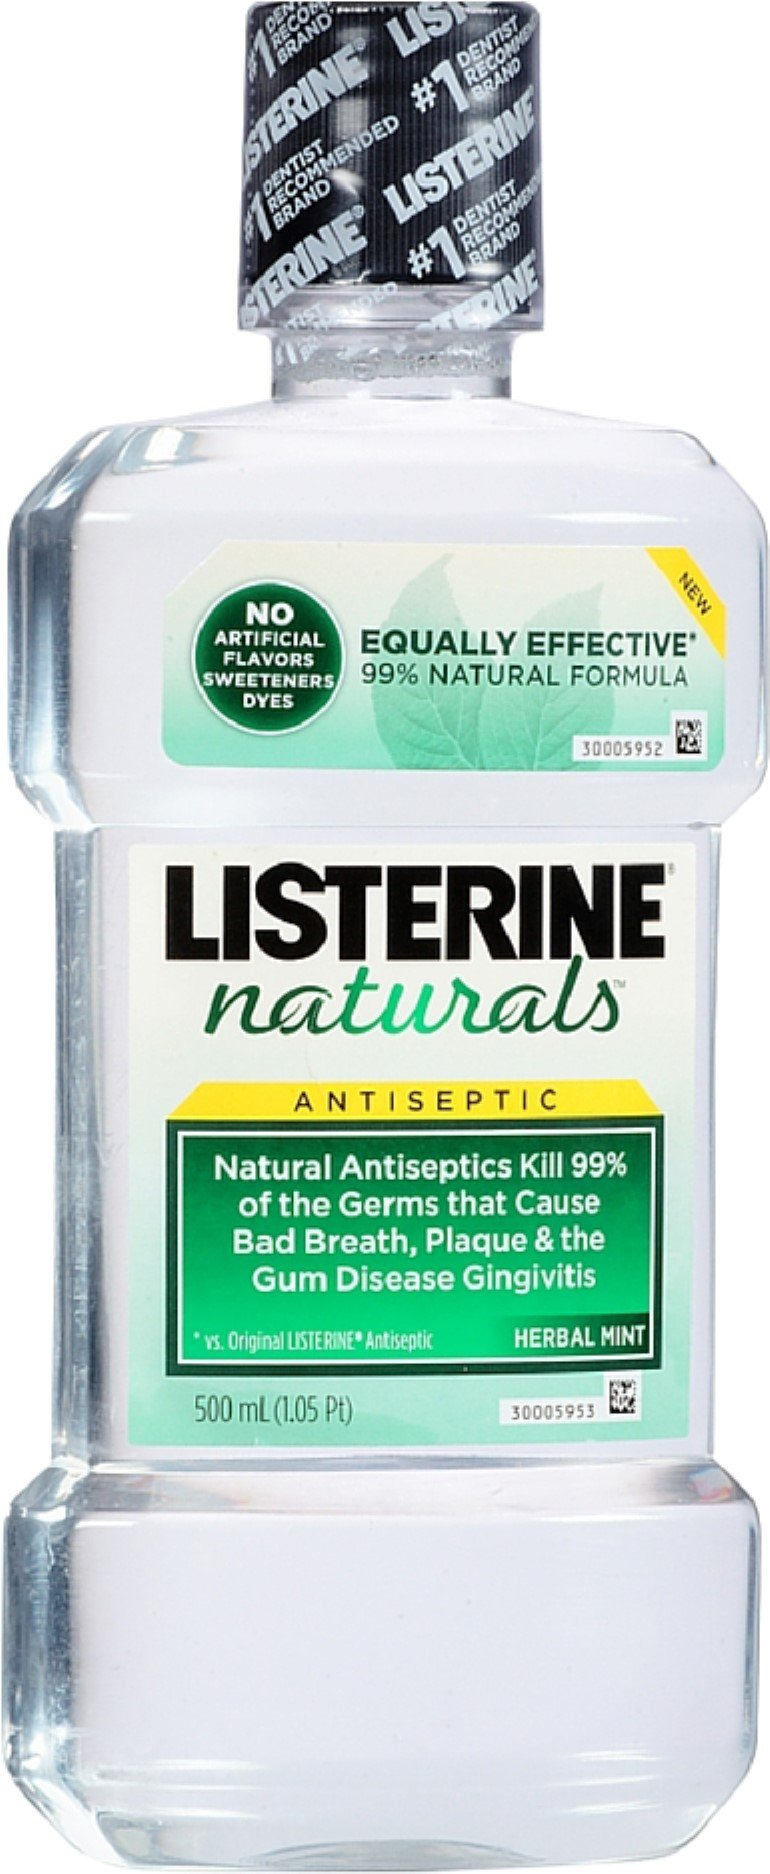 Listerine Nat Antsptic Hr Size 16.9z Listerine Naturals Antiseptic Herb/Mint 16.9z by Listerine (Image #1)